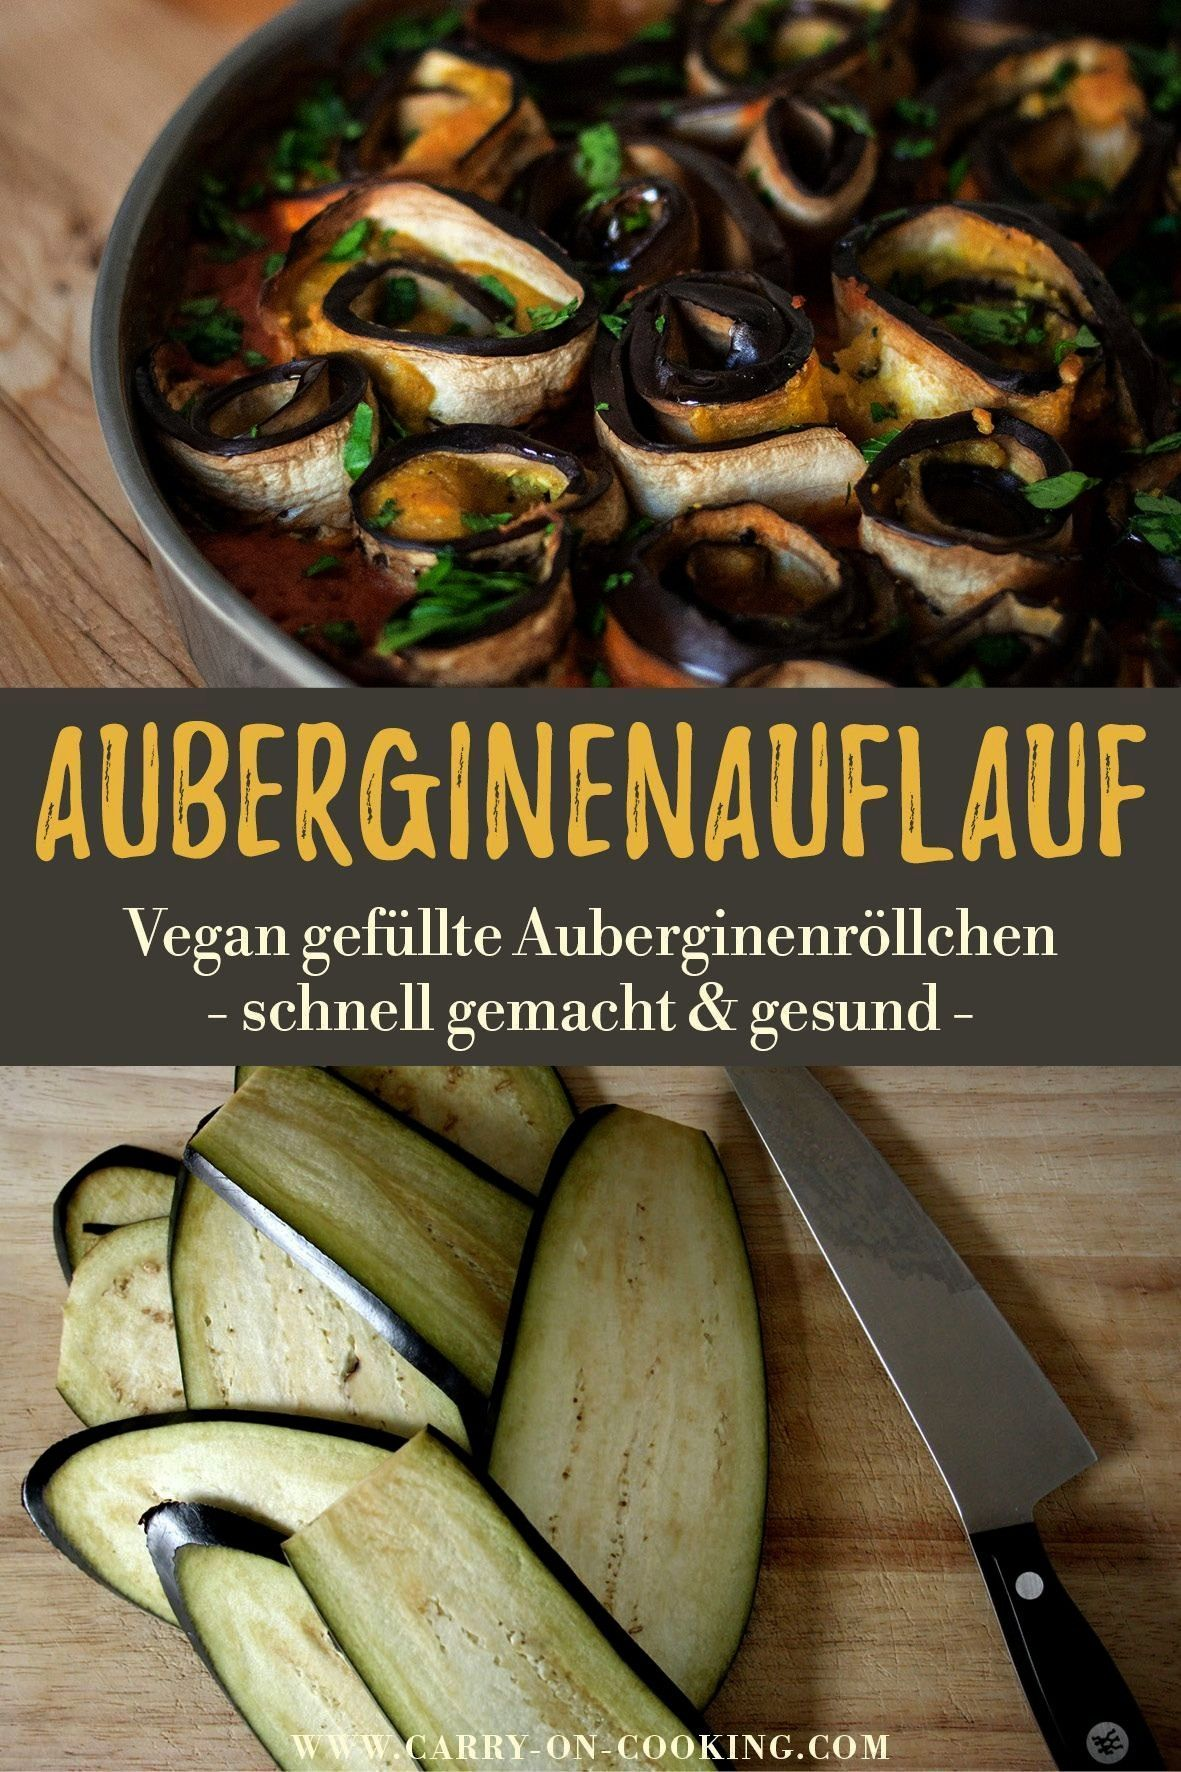 bake  brisk healthy  vegan  there is nothing better than beautiful   Aubergine casserole  brisk healthy  vegan  there is nothing nicer than beautiful   Au Aubergine bake...